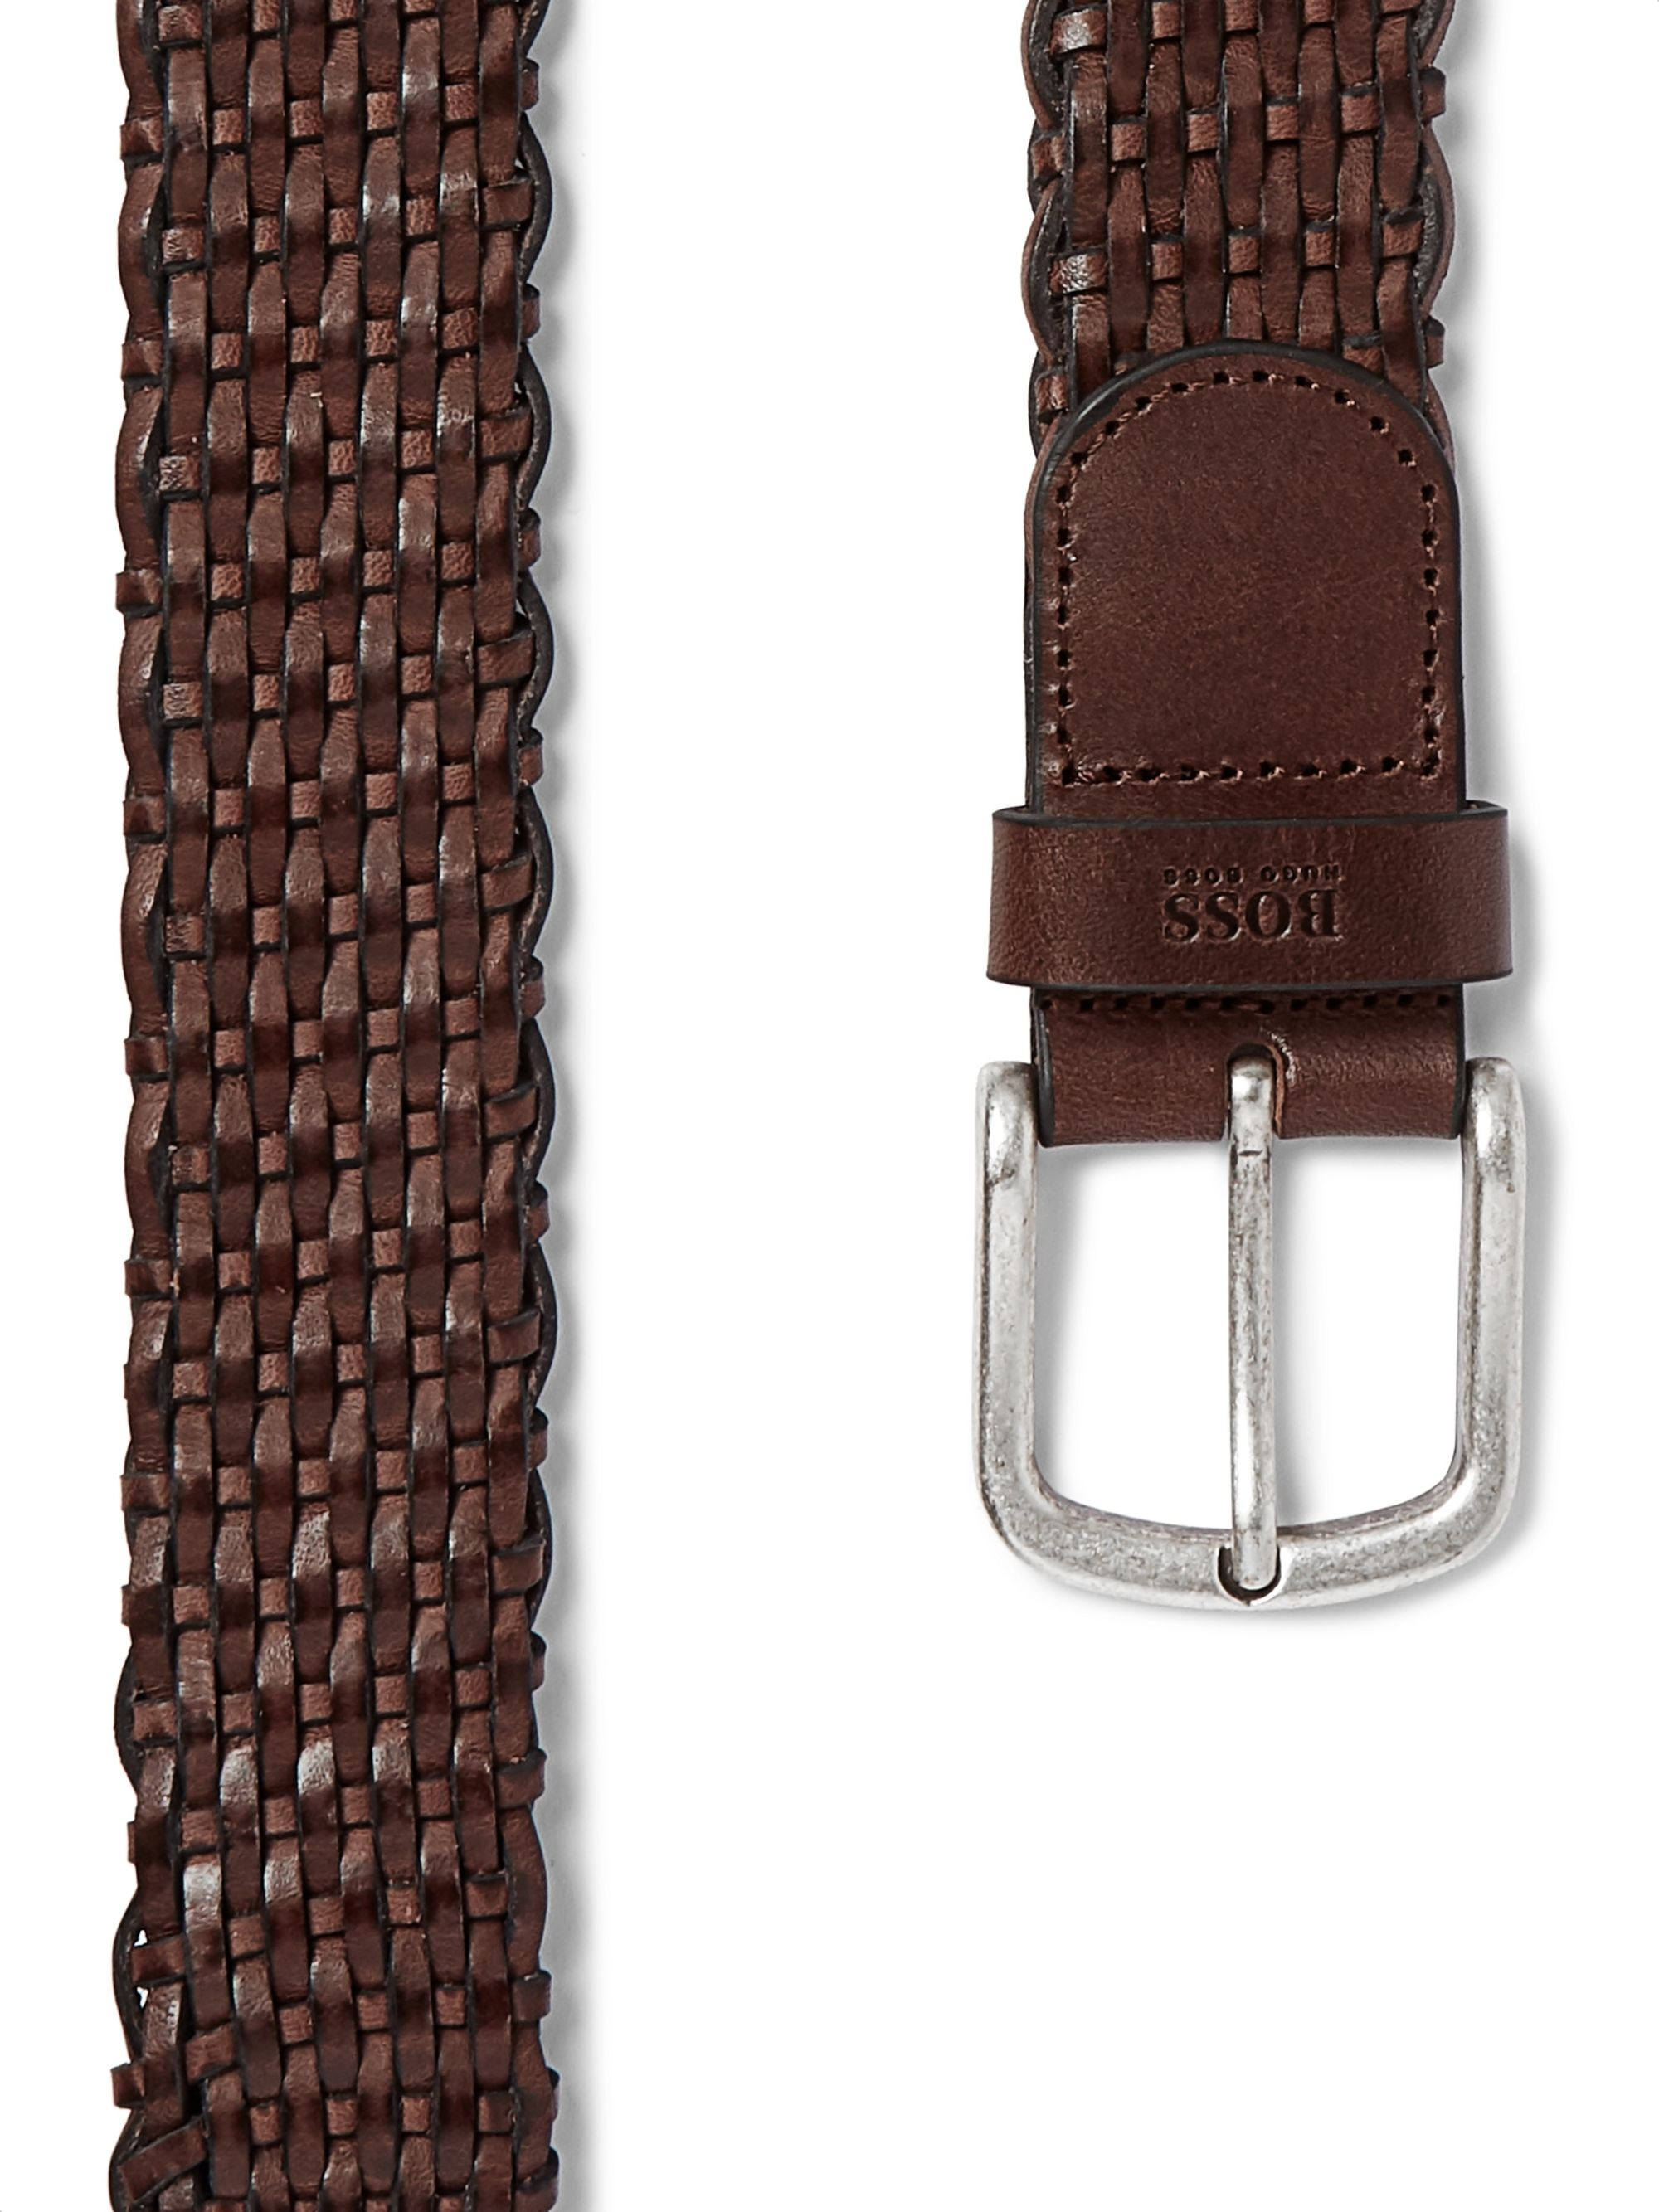 Hugo Boss 3.5cm Dark-Brown Woven Leather Belt